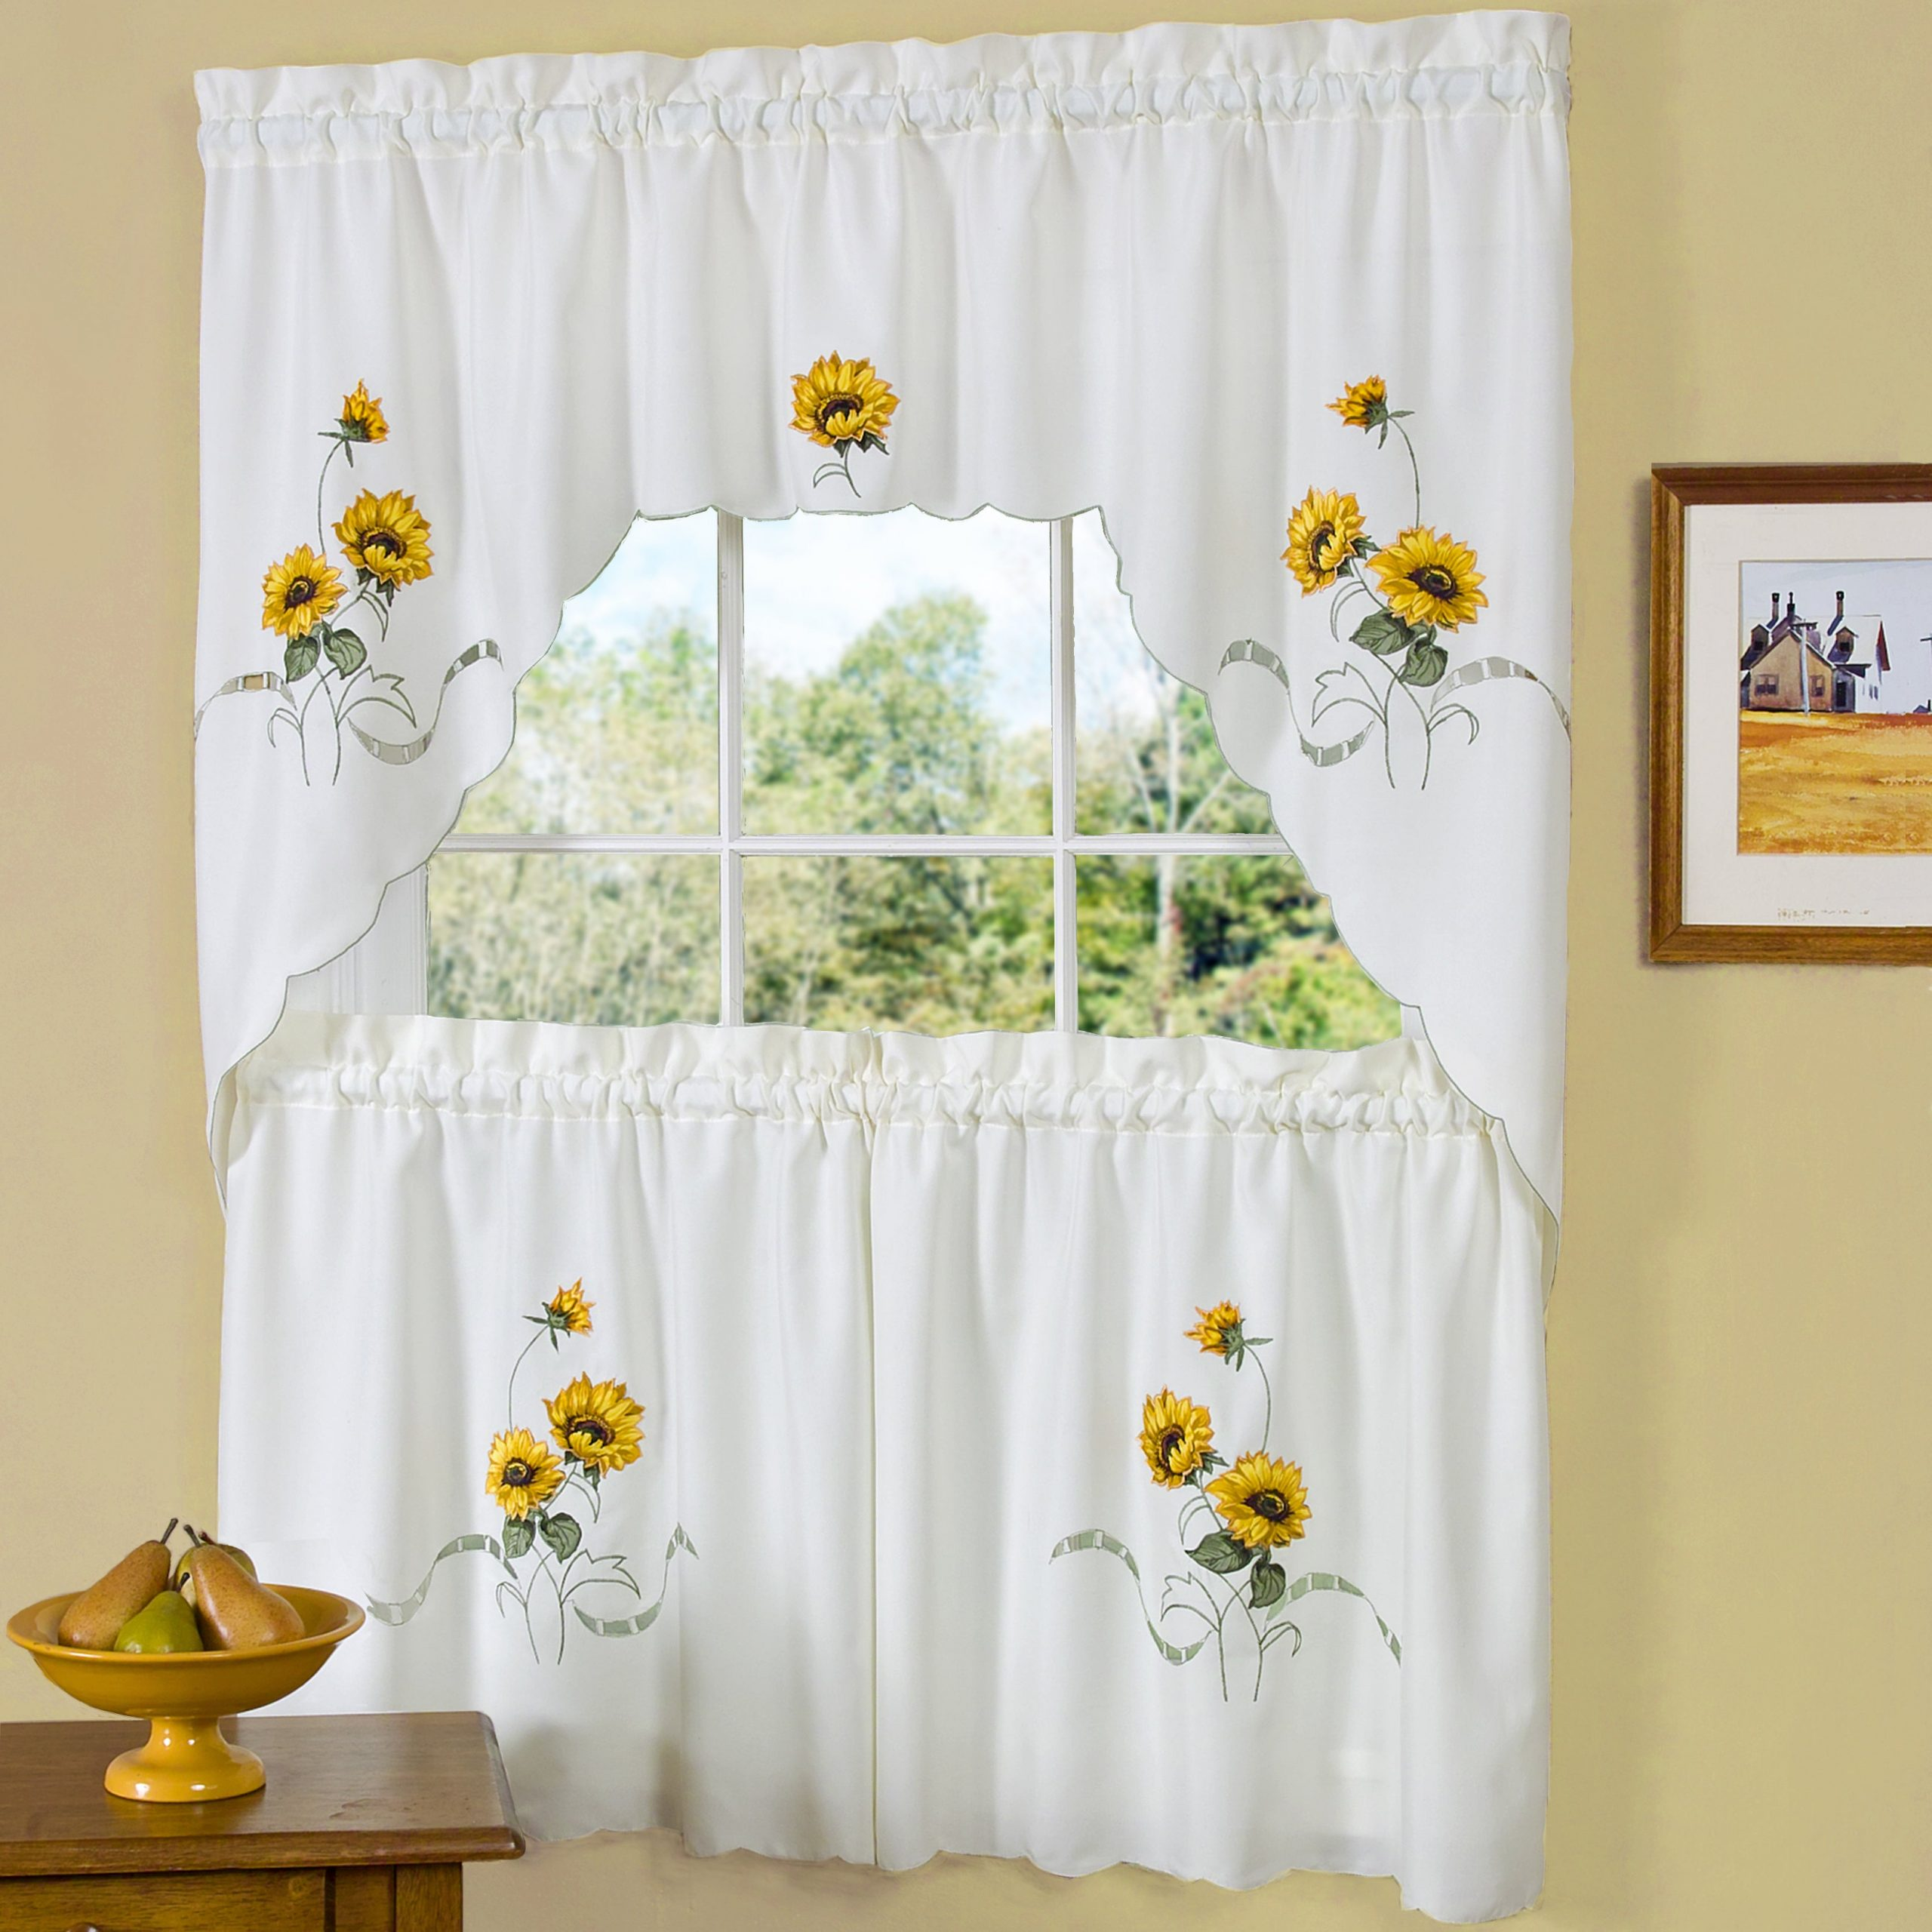 Well Known Traditional Two Piece Tailored Tier And Swag Window Curtains Set With Embroidered Yellow Sunflowers – 36 Inch With Embroidered Floral 5 Piece Kitchen Curtain Sets (View 6 of 20)